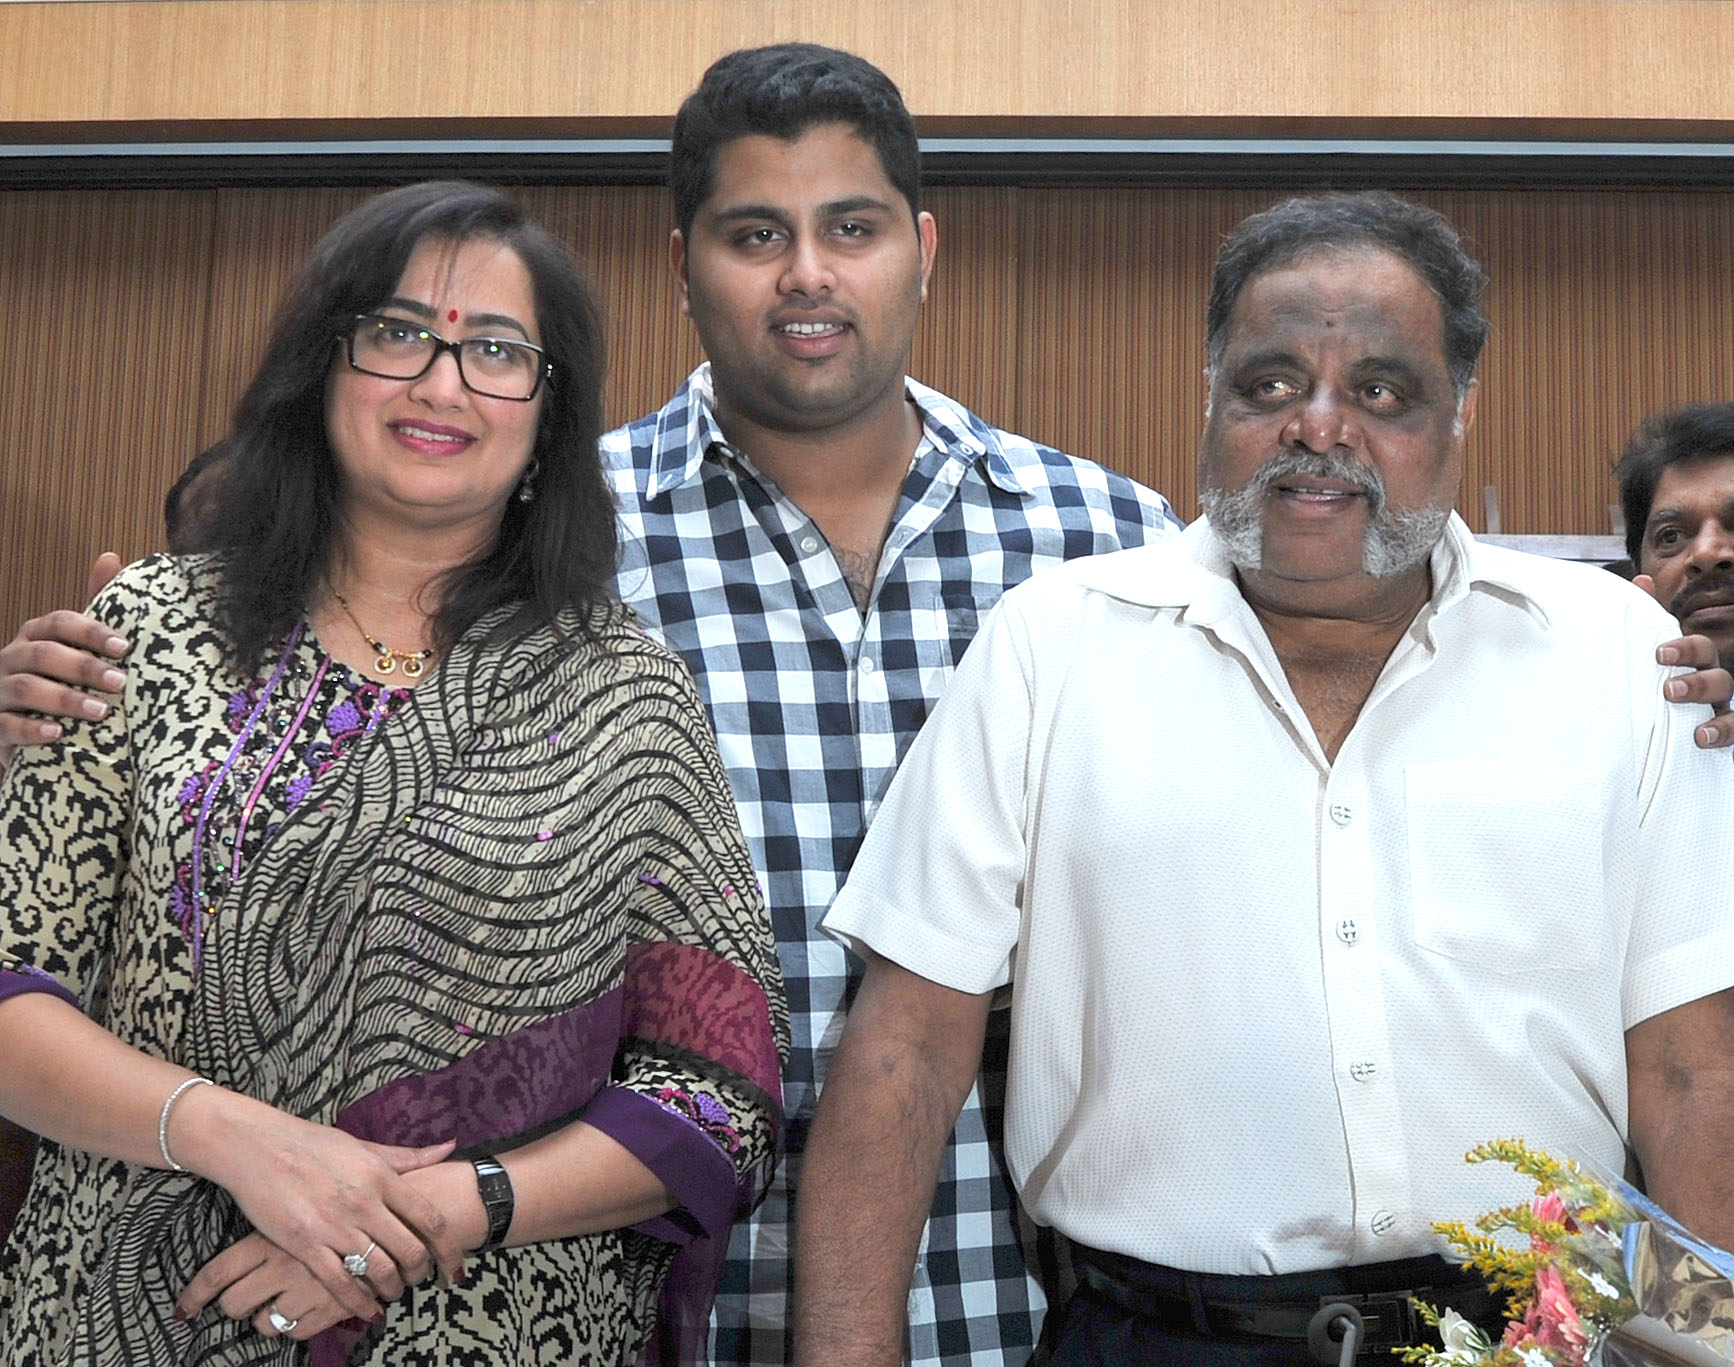 """Dr Satish described Ambareesh as more than a patient. """"He was more of a friend. After the treatment in Singapore, he had got a second chance. I was with him. He had suffered a lot,"""" he remembered. (Above: A family photo of Ambareesh)"""